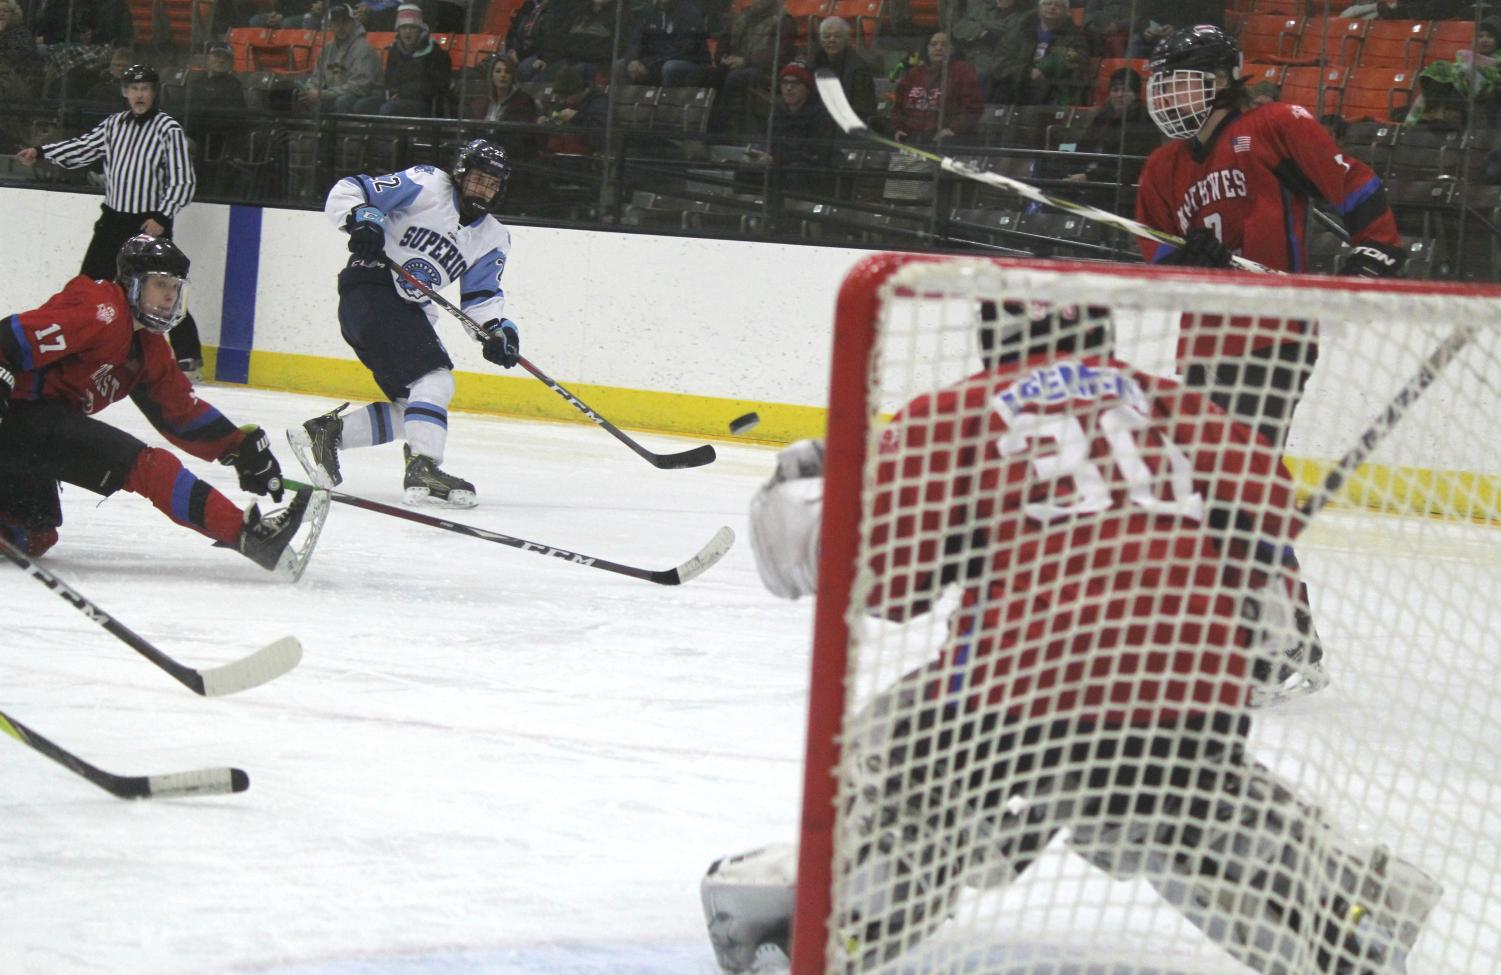 Senior Derrick Mattson (22) makes a shot on goal saved by Northwest goalie Jonah Becker at Wessman Arena last during the boys hockey game. Superior won 7-0 and advances to the Section 1 semi final on Tuesday against New Richmond.